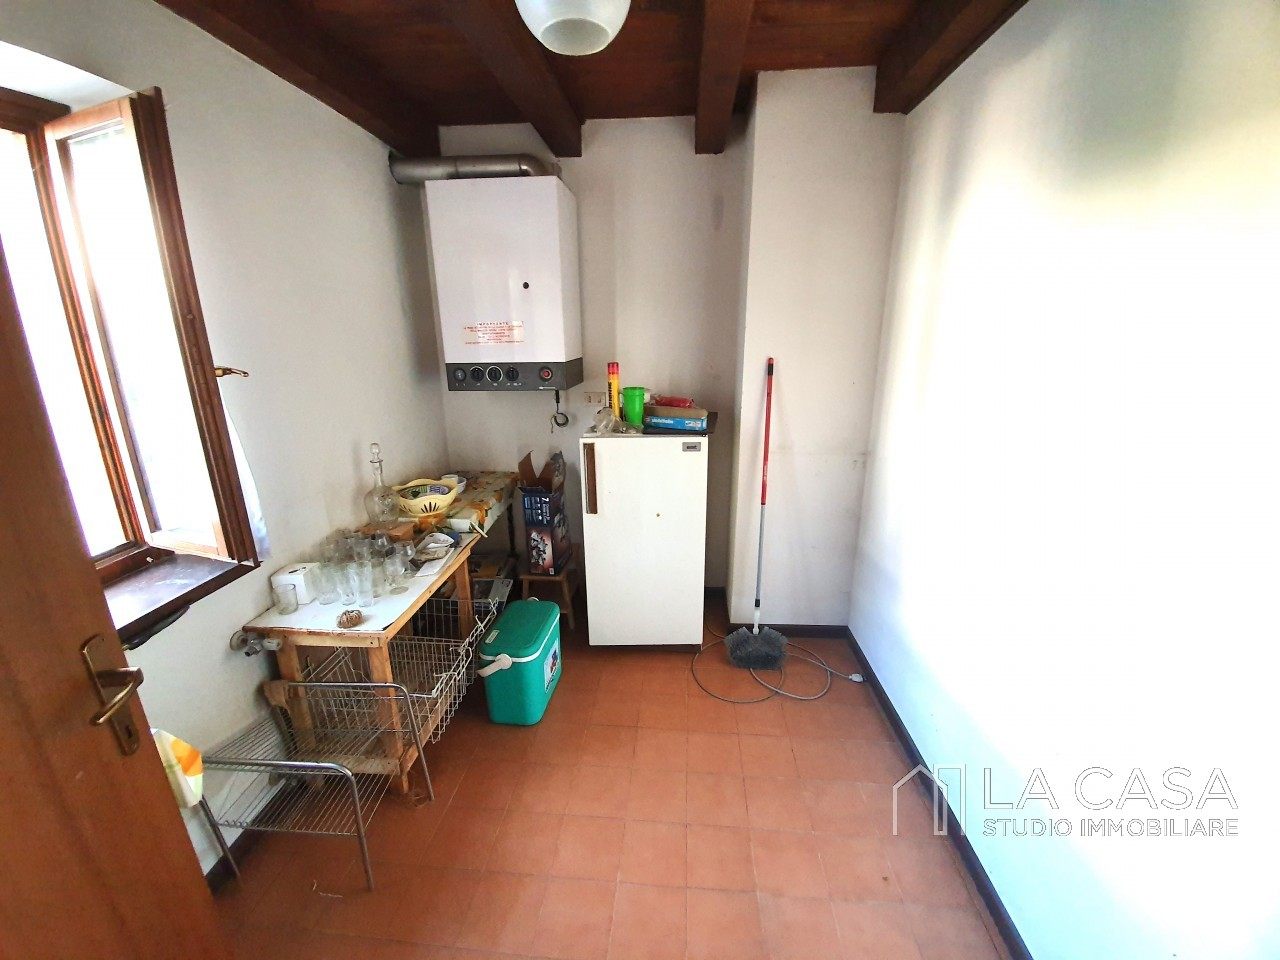 Casa indipendente in Linea - Rif.C6 https://images.gestionaleimmobiliare.it/foto/annunci/191125/2114313/1280x1280/012__20191125_115650_wmk_1.jpg